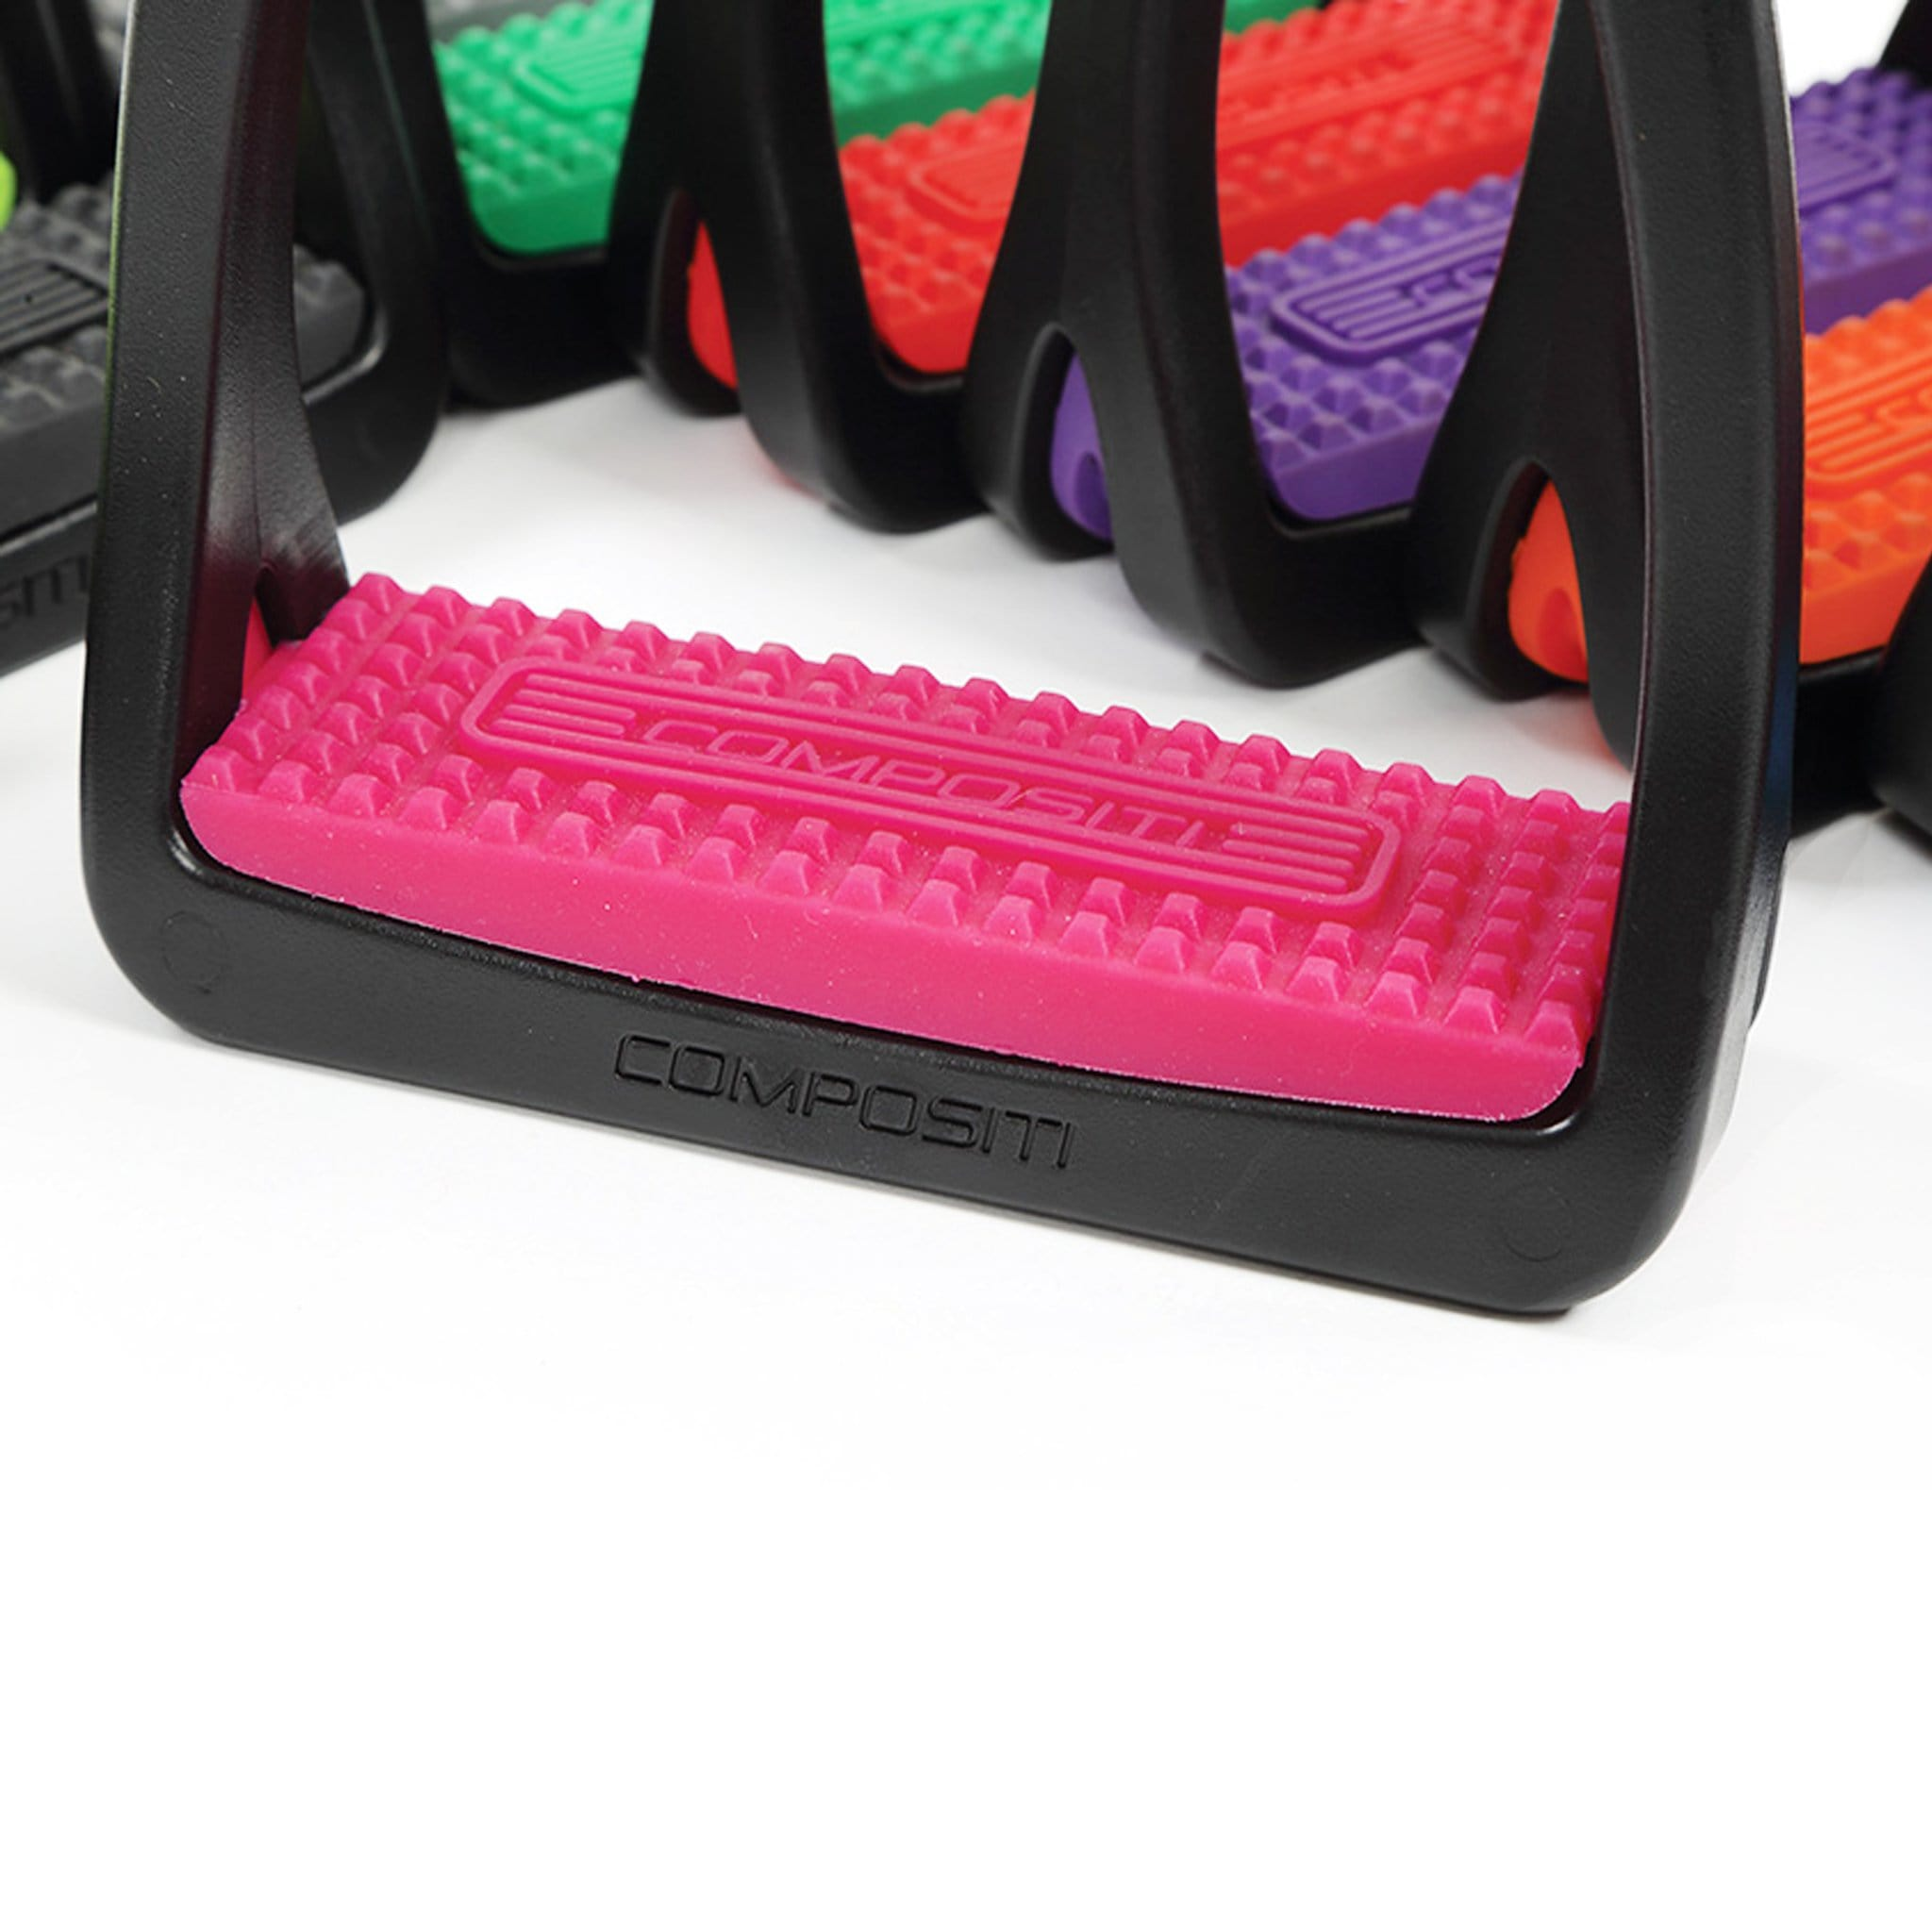 Shires Compositi Premium Profile Stirrup Treads